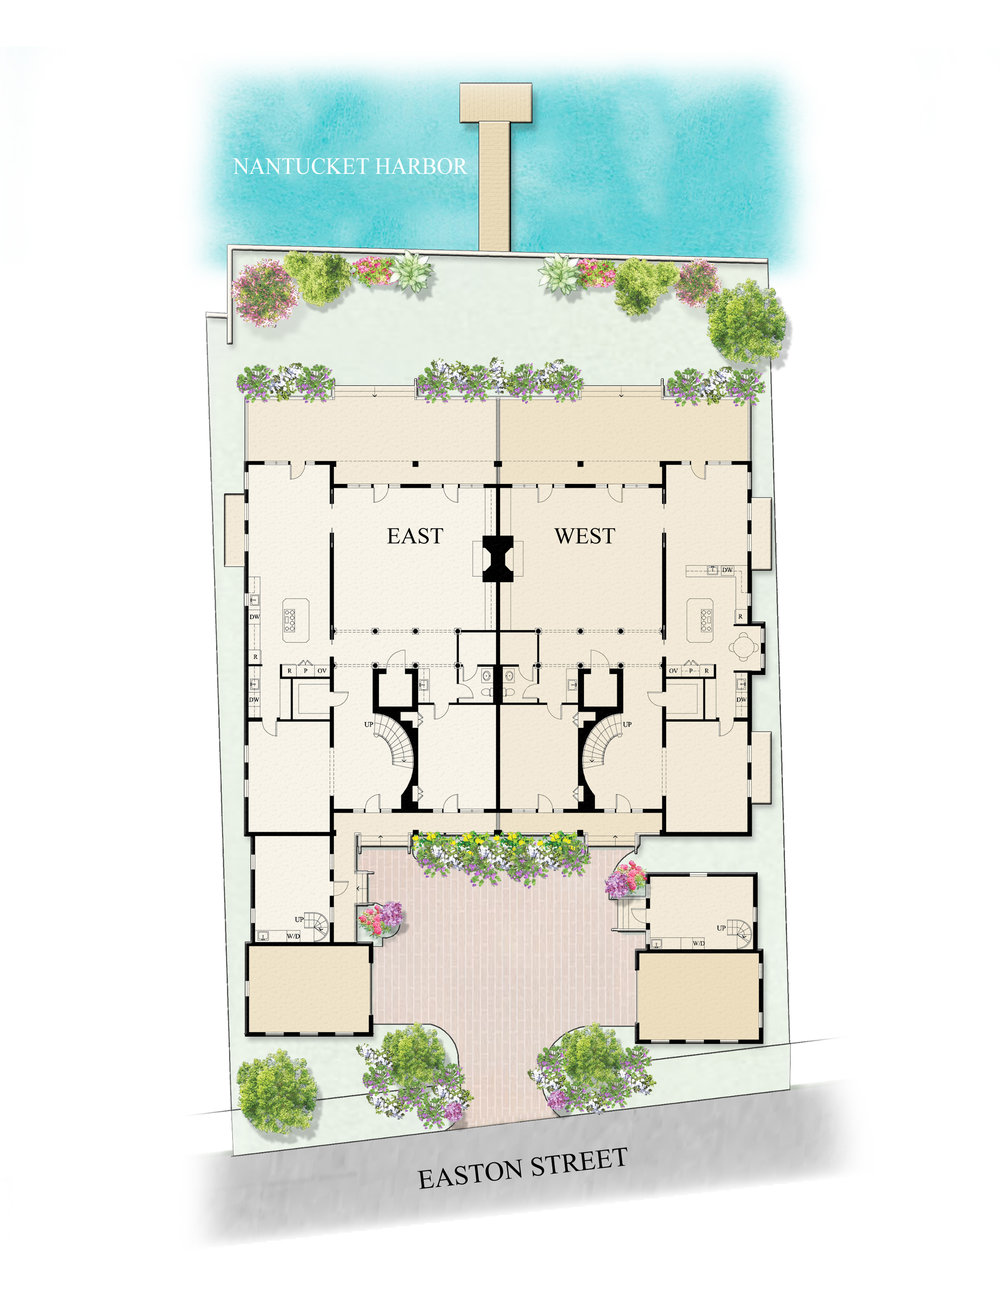 42 EASTON STREET SITE PLAN6.jpg